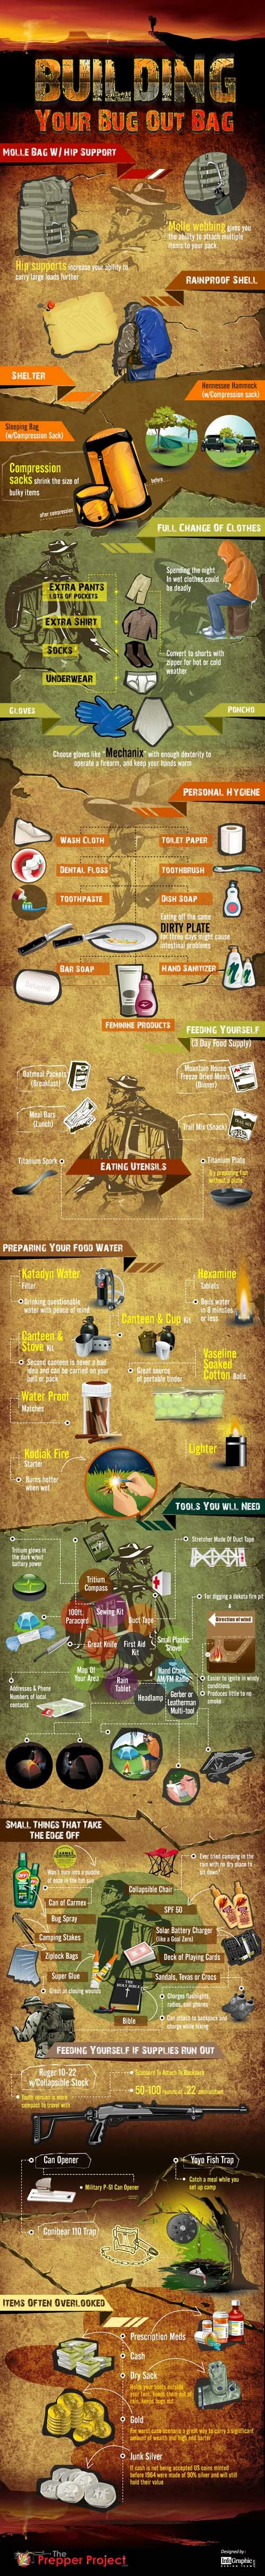 Bug Out Bag Contents-Should there be any unexpected disaster to occur, are you confident enough to face it and leave home well prepared? This is an infographic about how to build a bag out bag. It simply shows which items should be inside the bag and why they are indispensable to be there such as items to prepare foods, those for personal hygiene, shelter, and many more. You'll need to equip yourself with these things for a greater advantage of surviving during disasters or emergency…